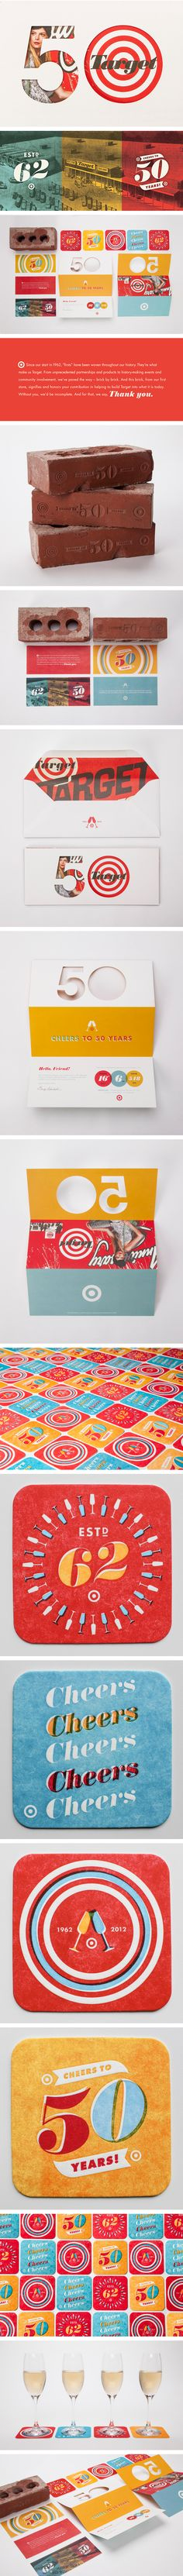 Target: Anniversary Party Collateral by Allan Peters